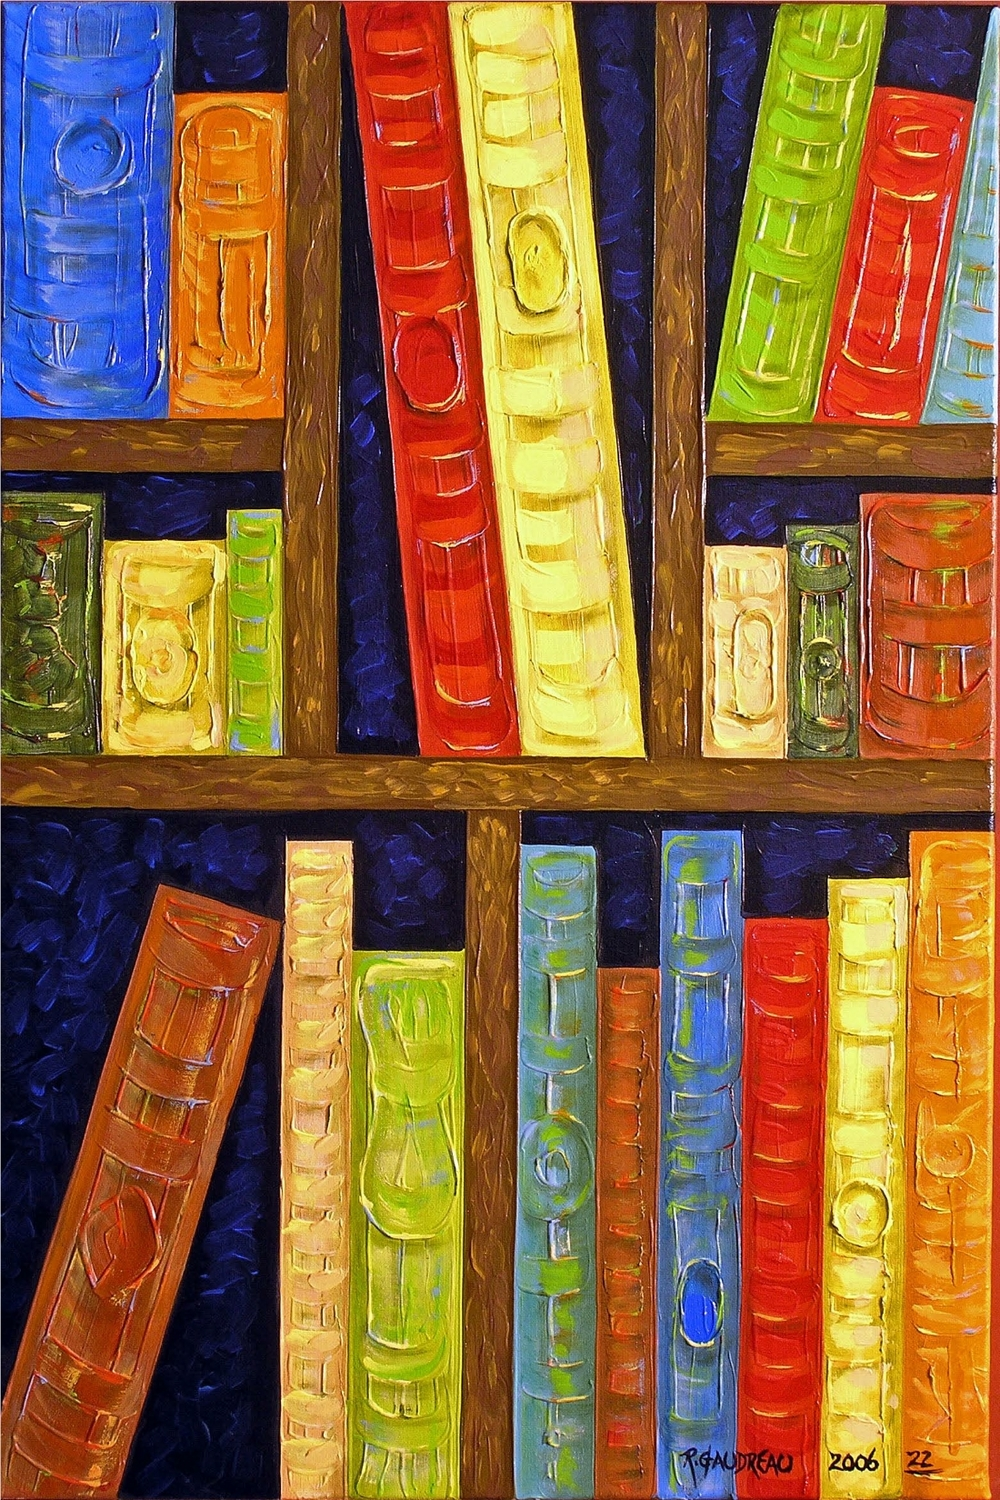 22  Books 2006 oil on canvas 36 x 24 inches